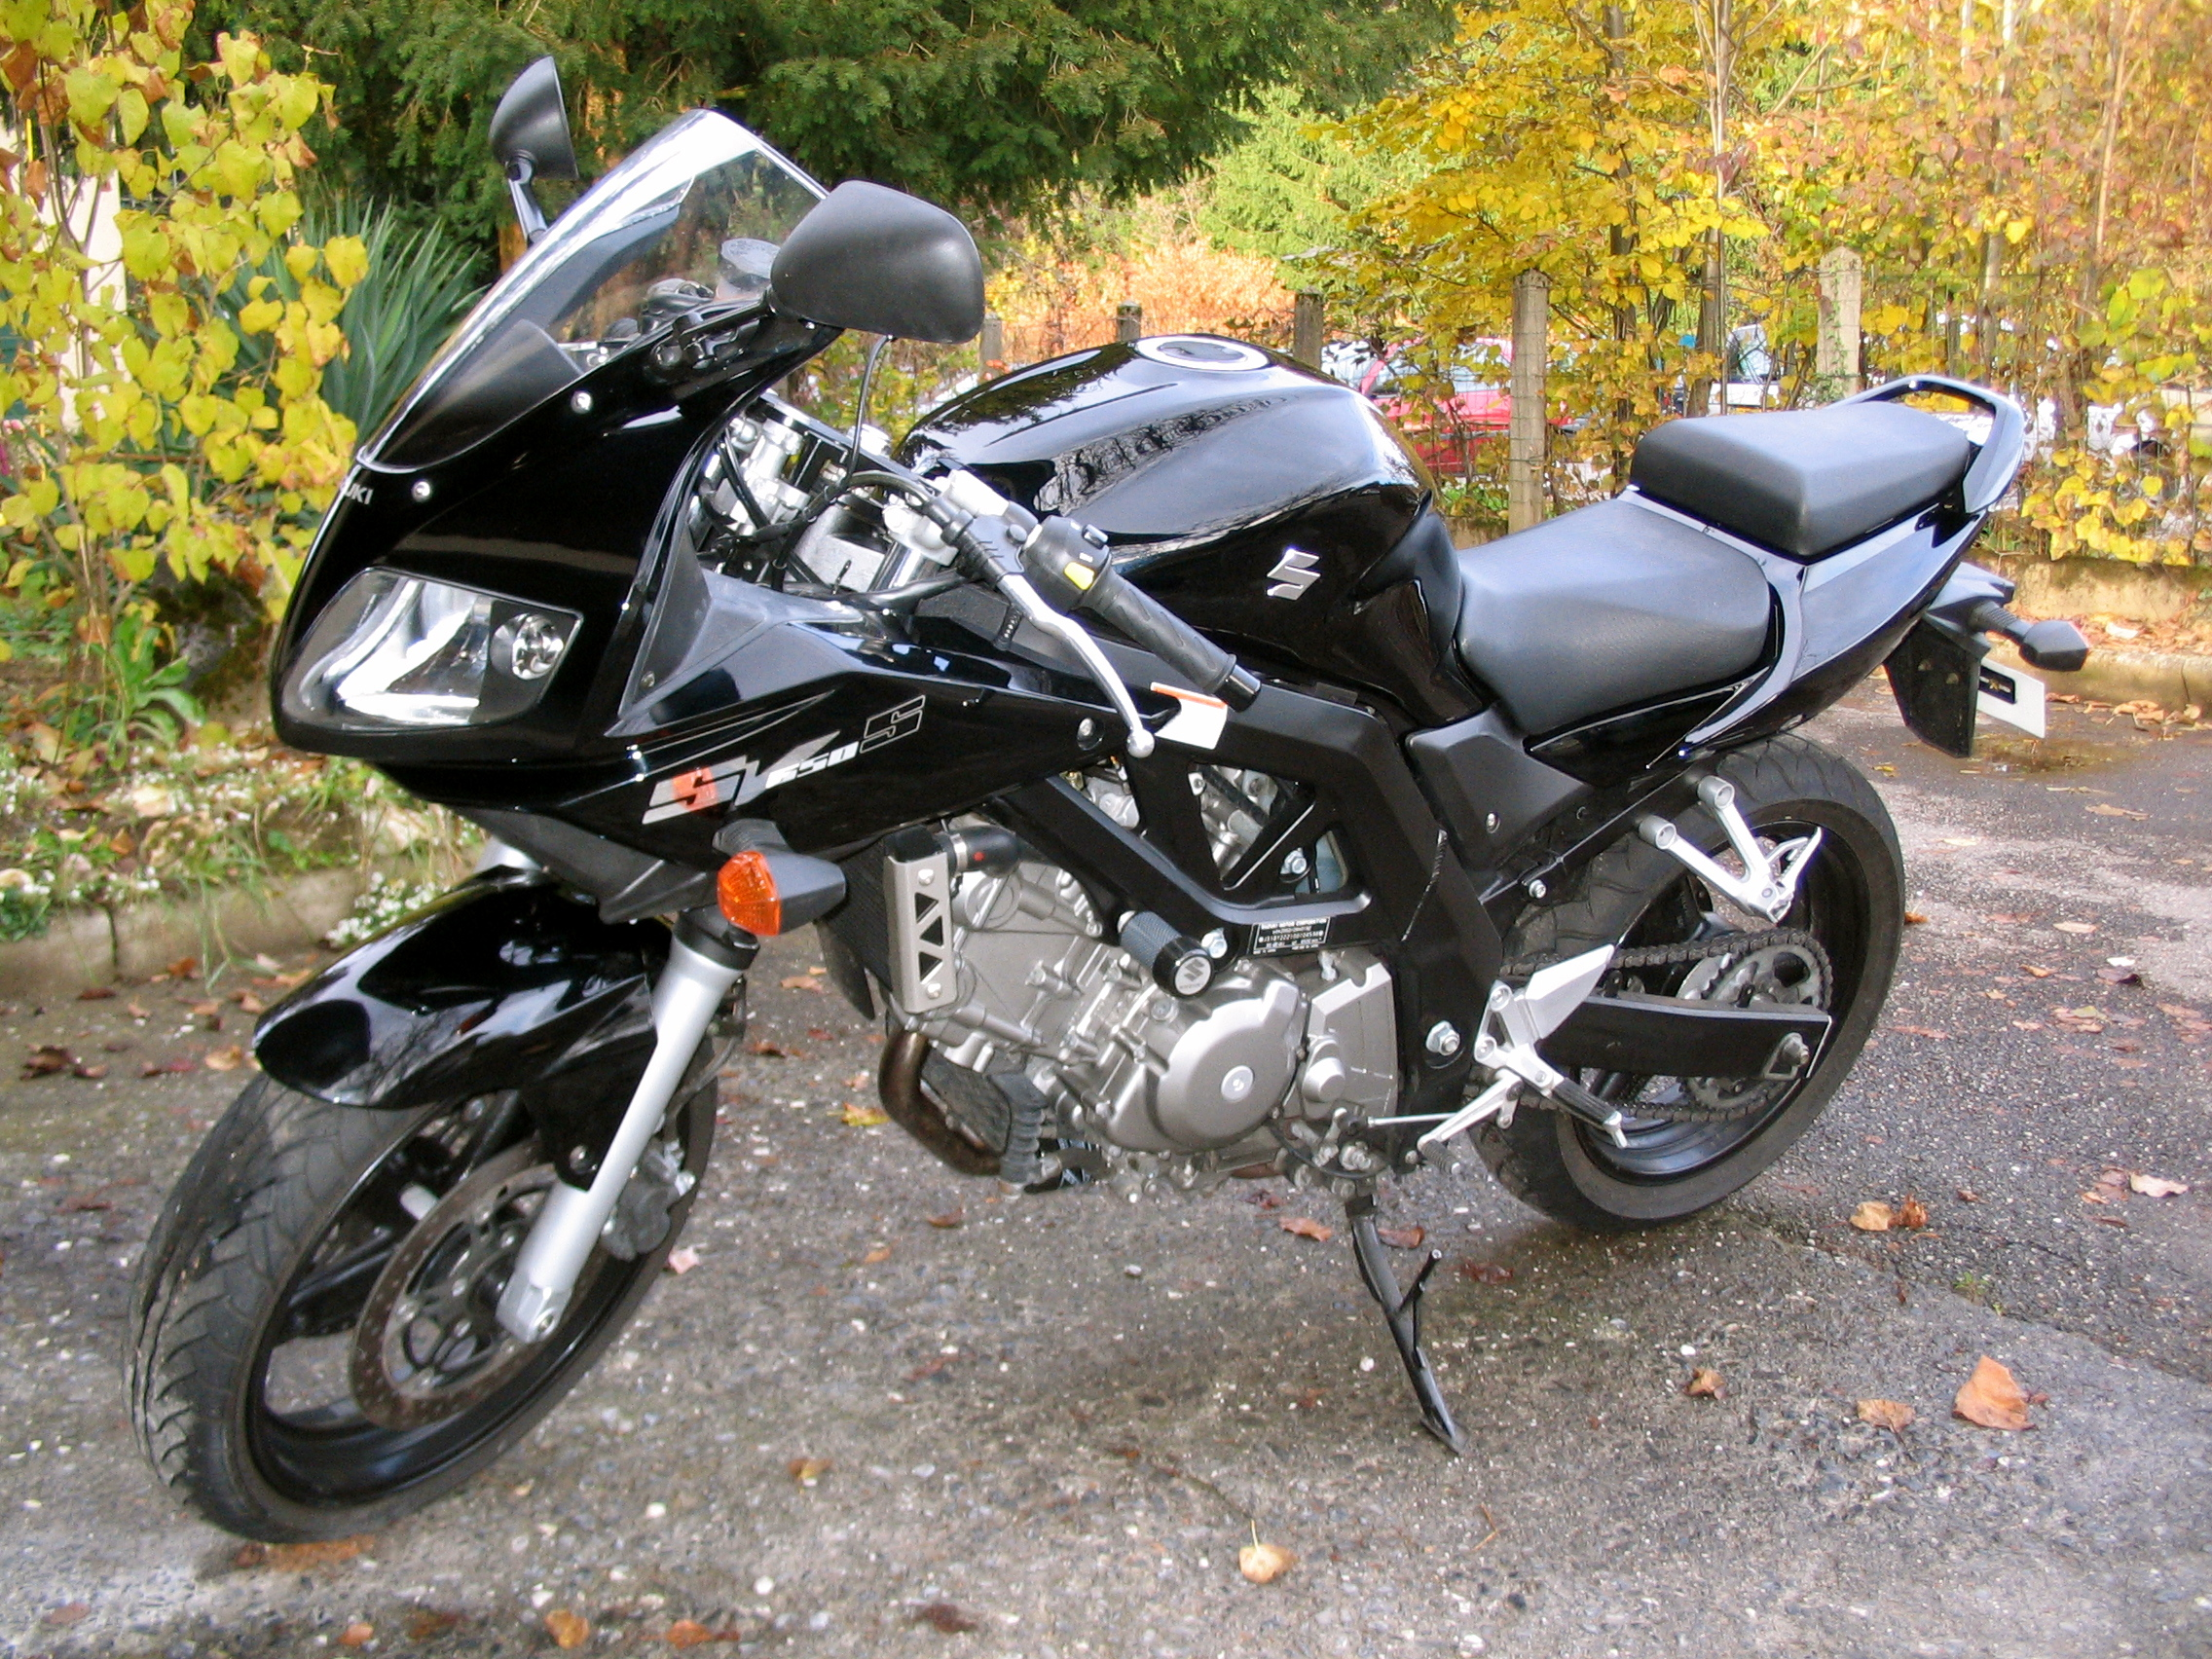 Suzuki sv650sf photo - 2